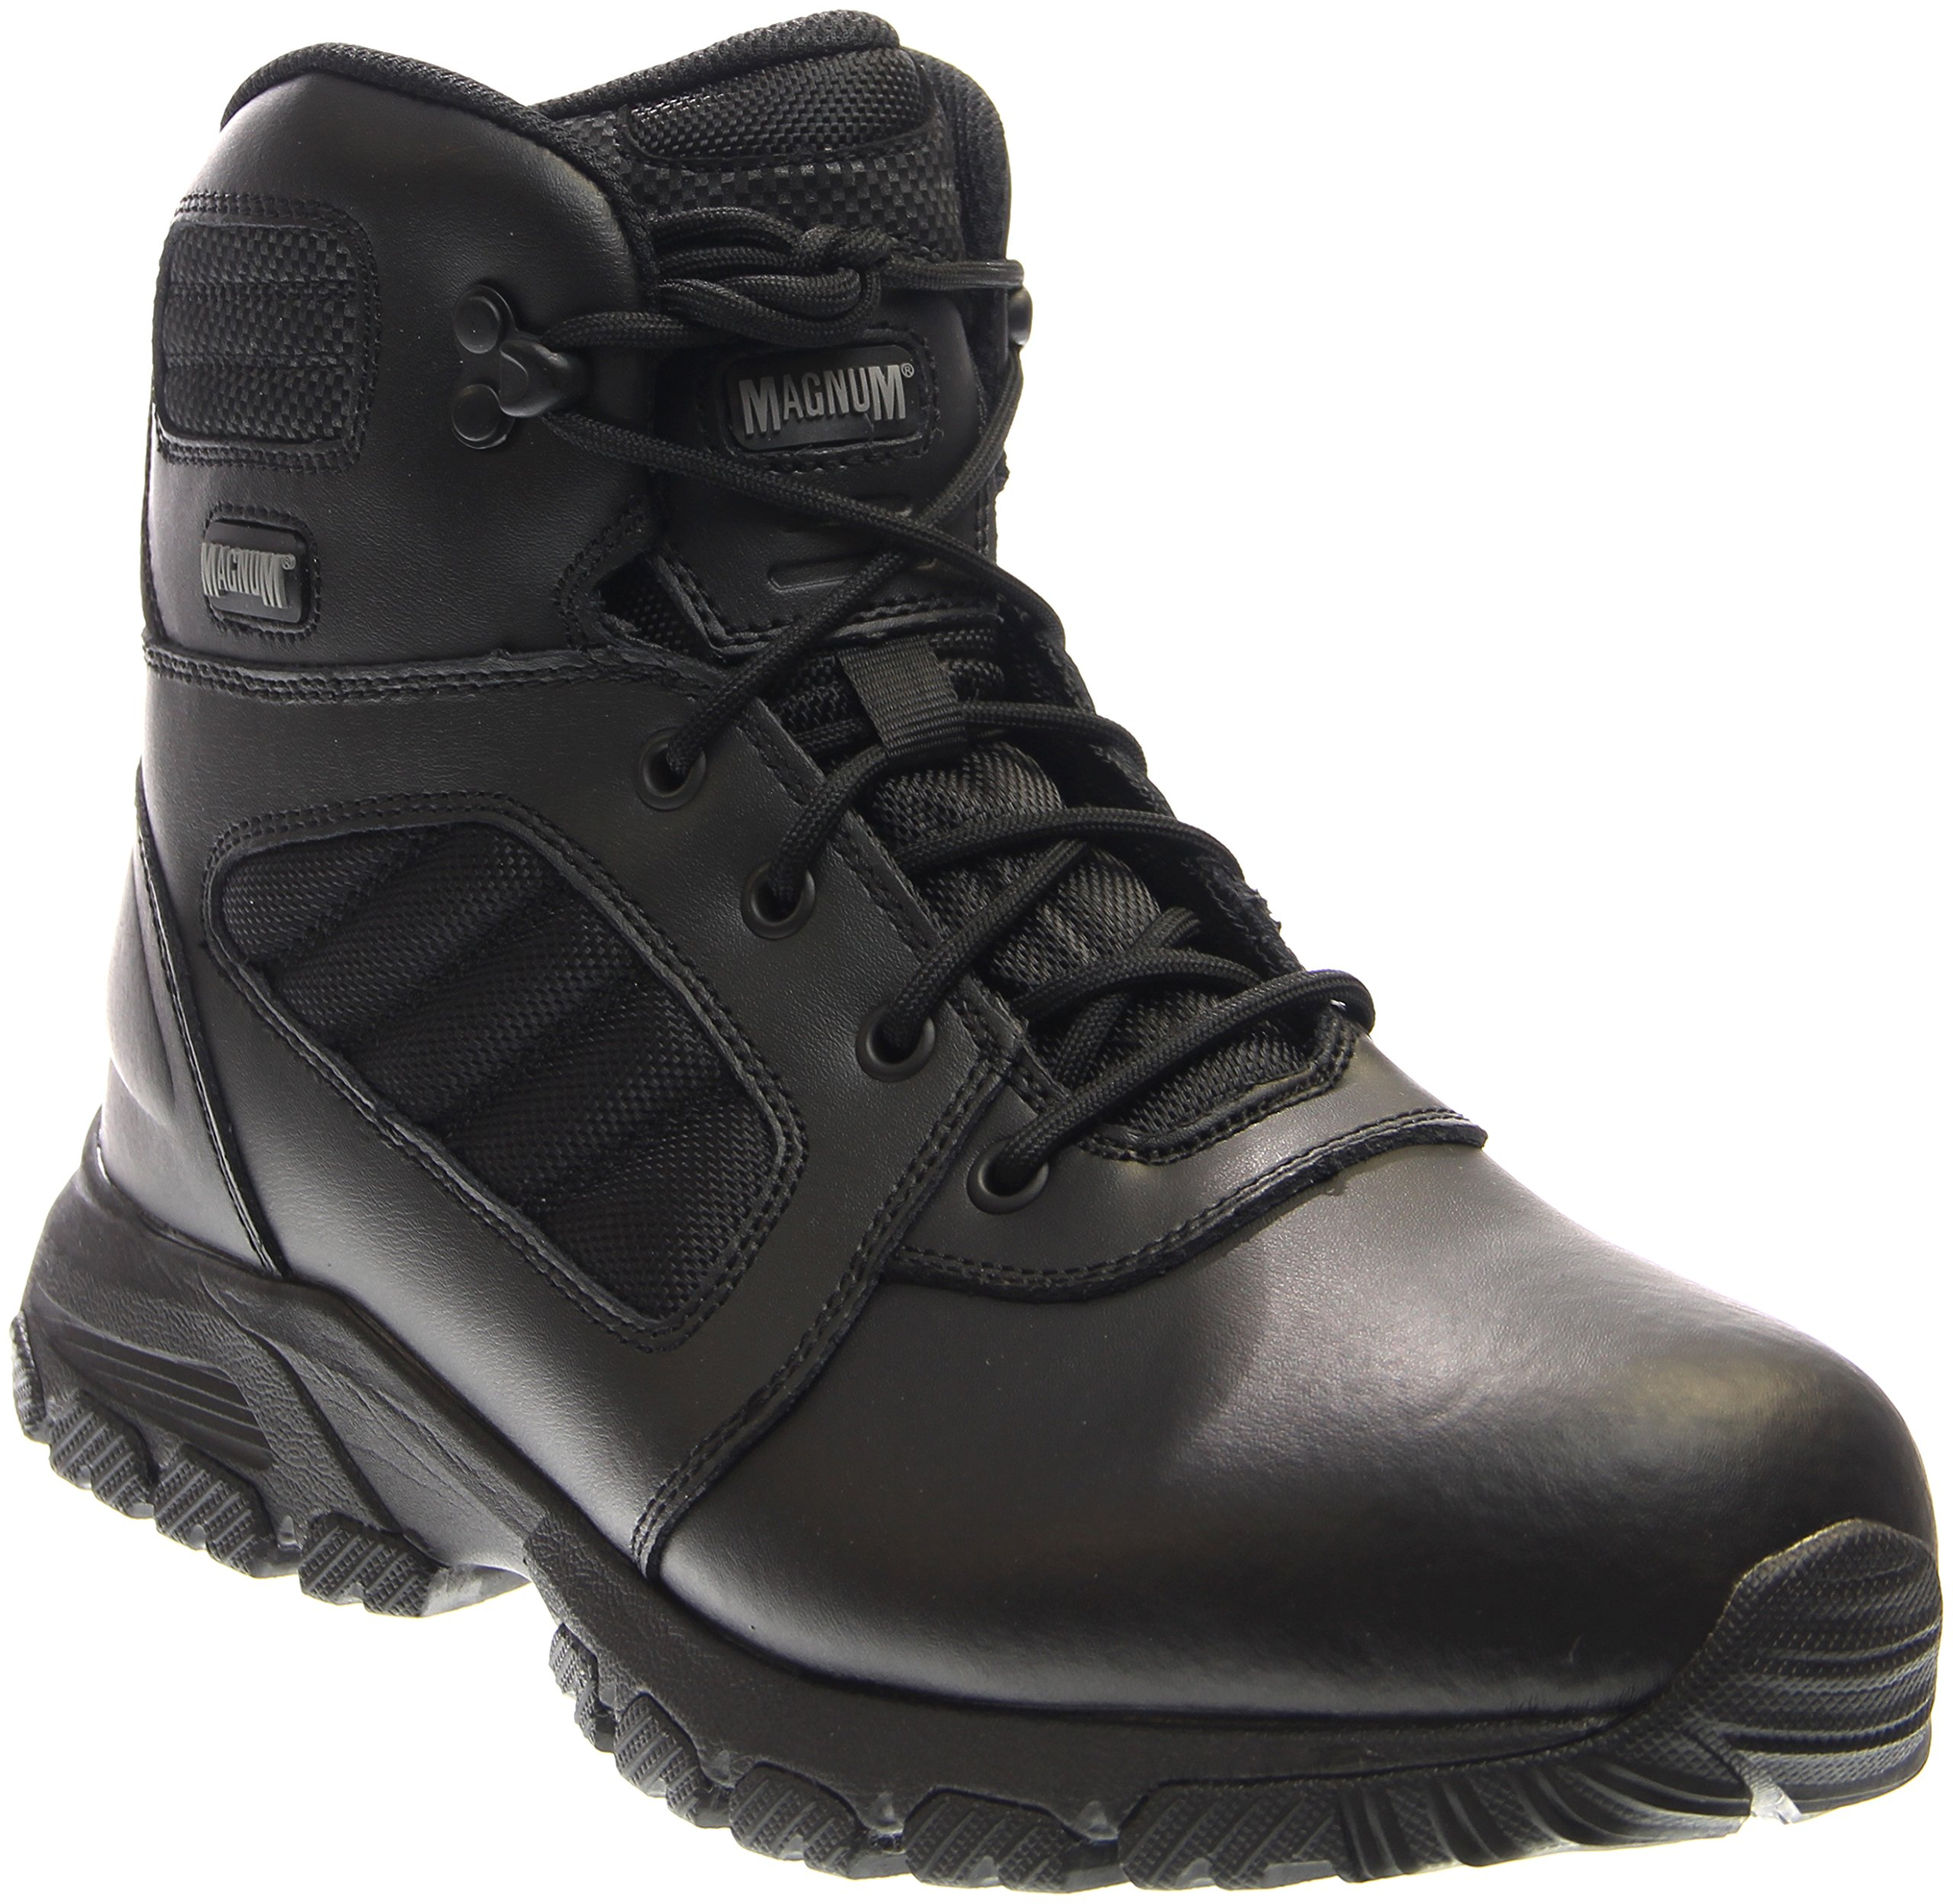 Magnum Men's Response III 6.0 Slip Resistant Work Boot,Black,15 M US